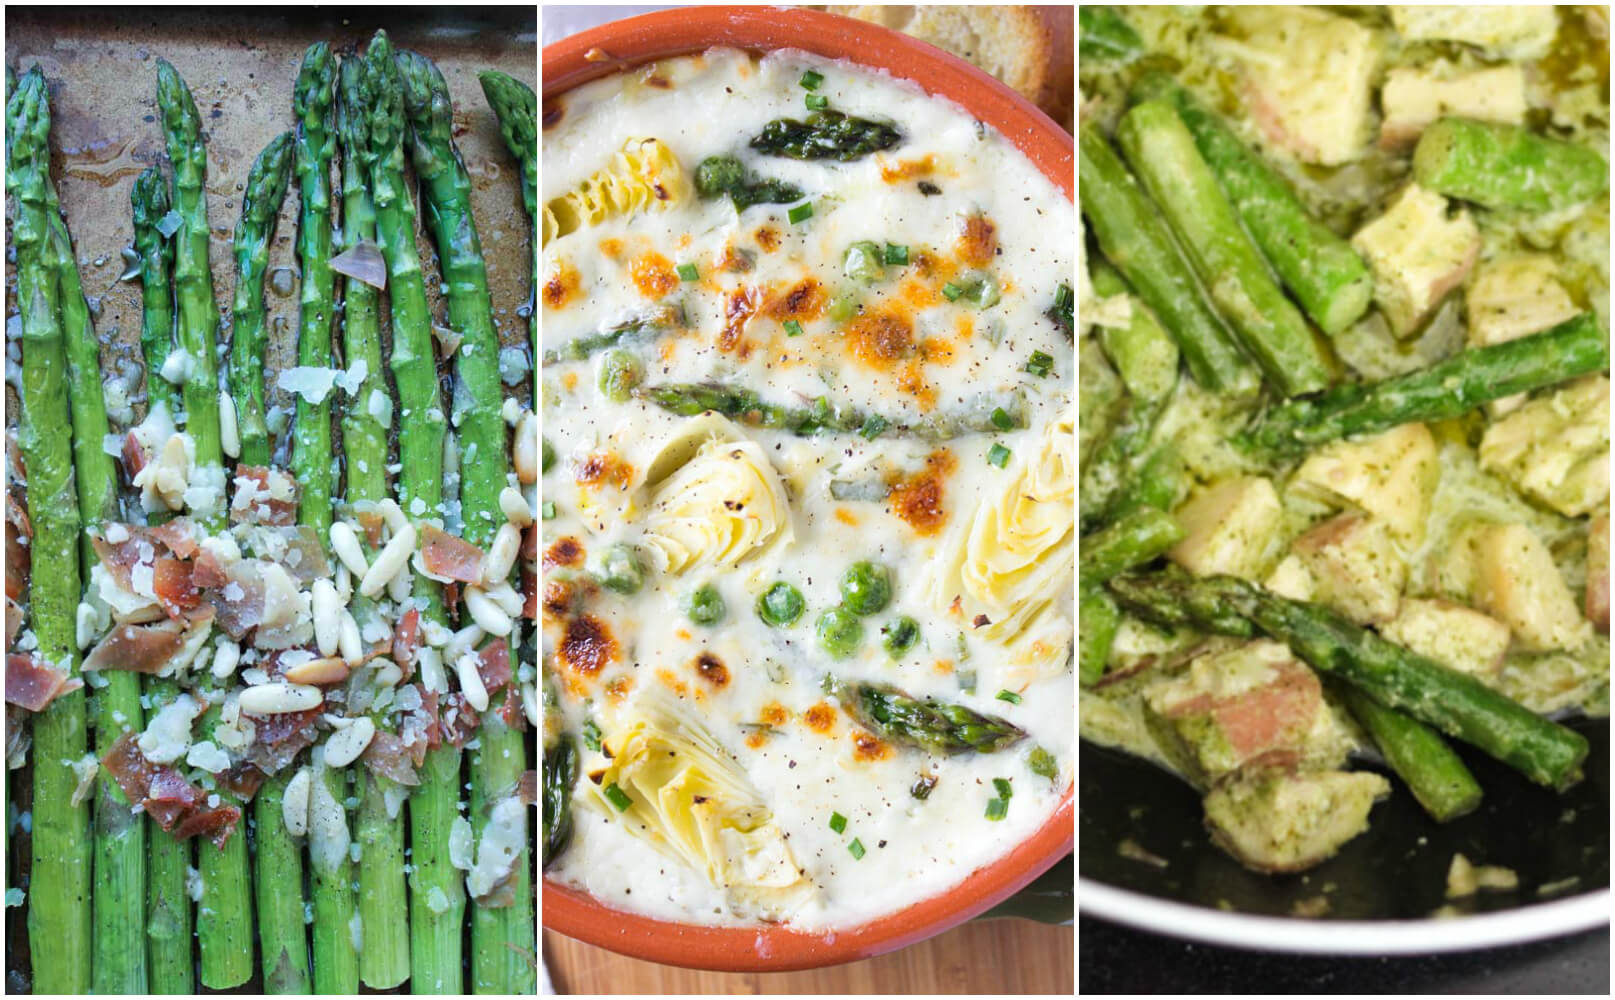 Best asparagus recipes + guide to spring produce | littlebroken.com @littlebroken